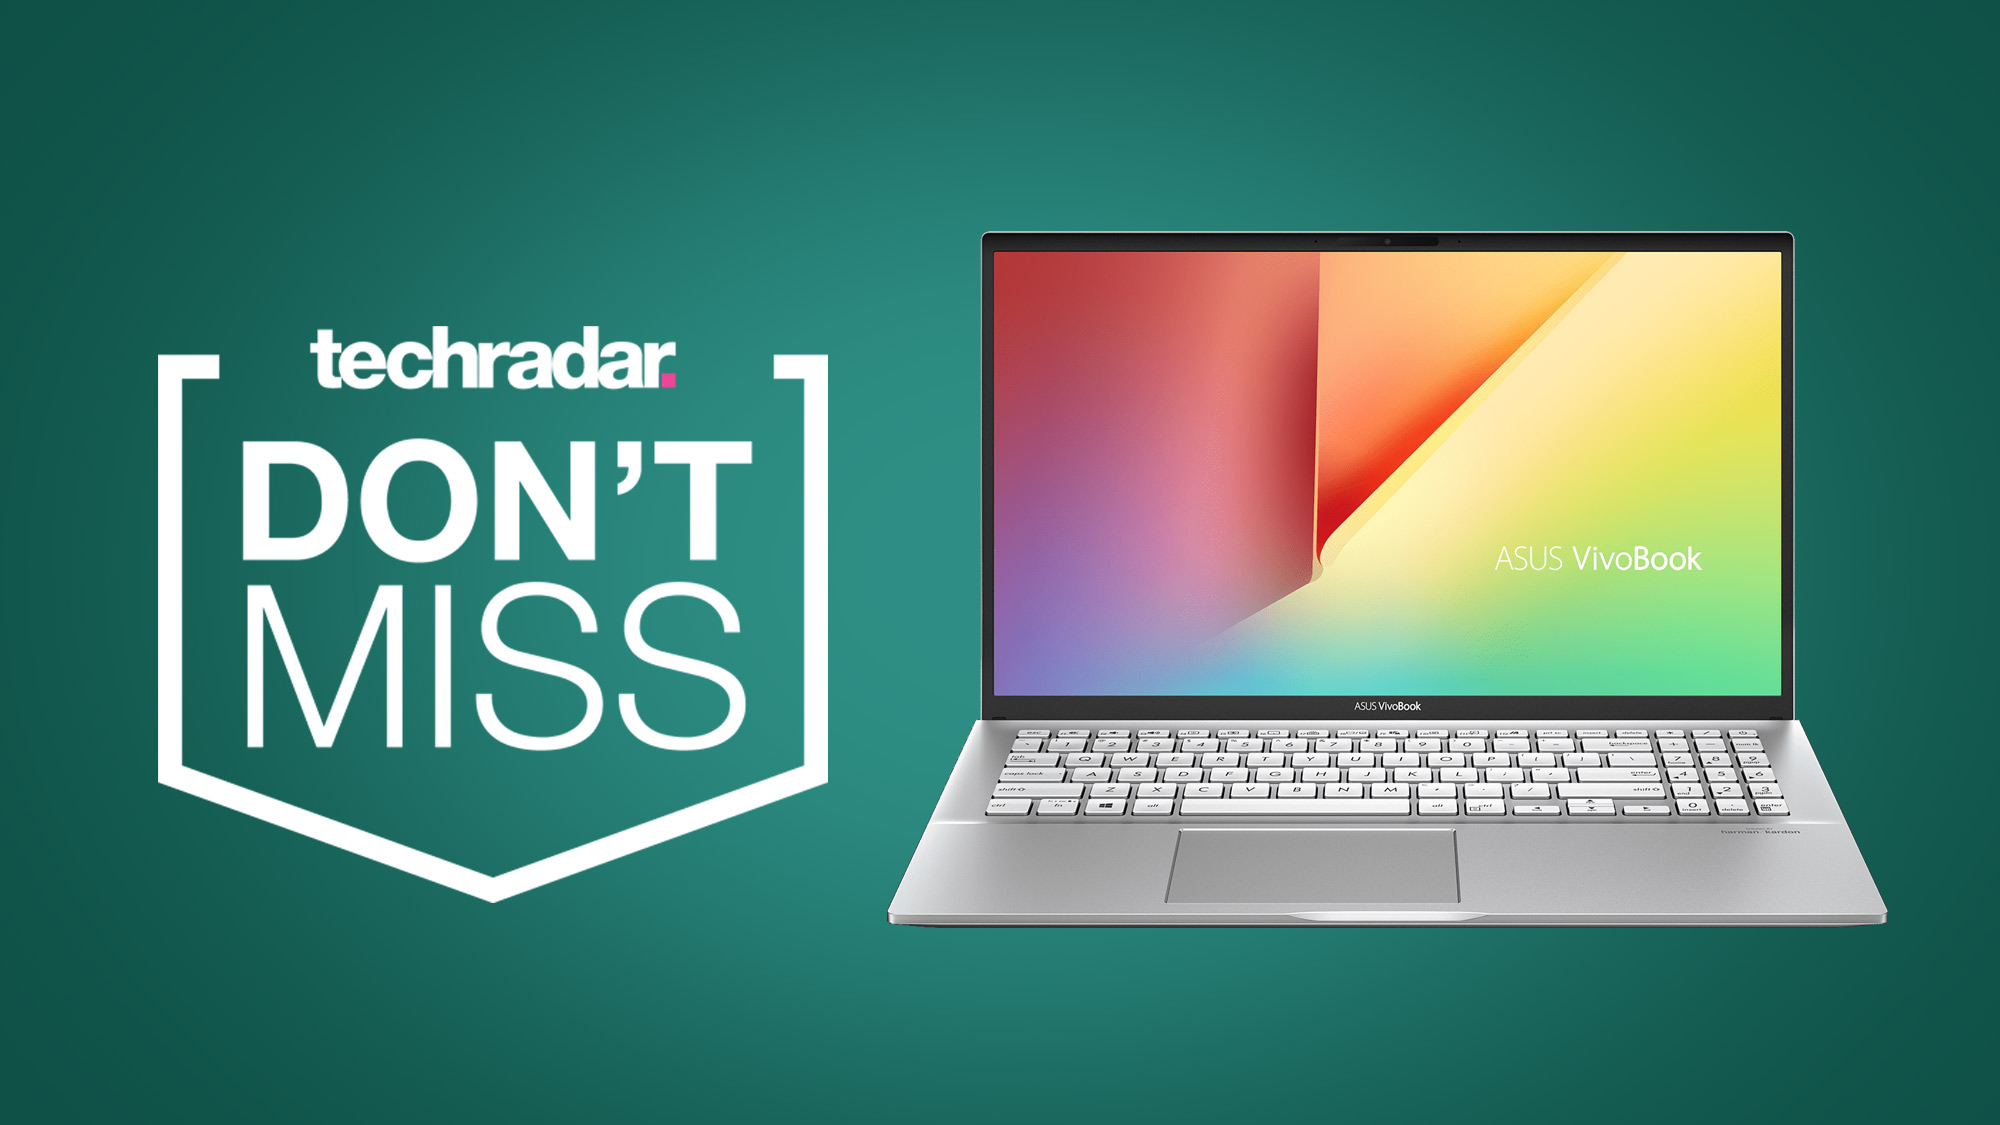 Newegg is offering up some excellent Asus VivoBook laptop deals this weekend thumbnail